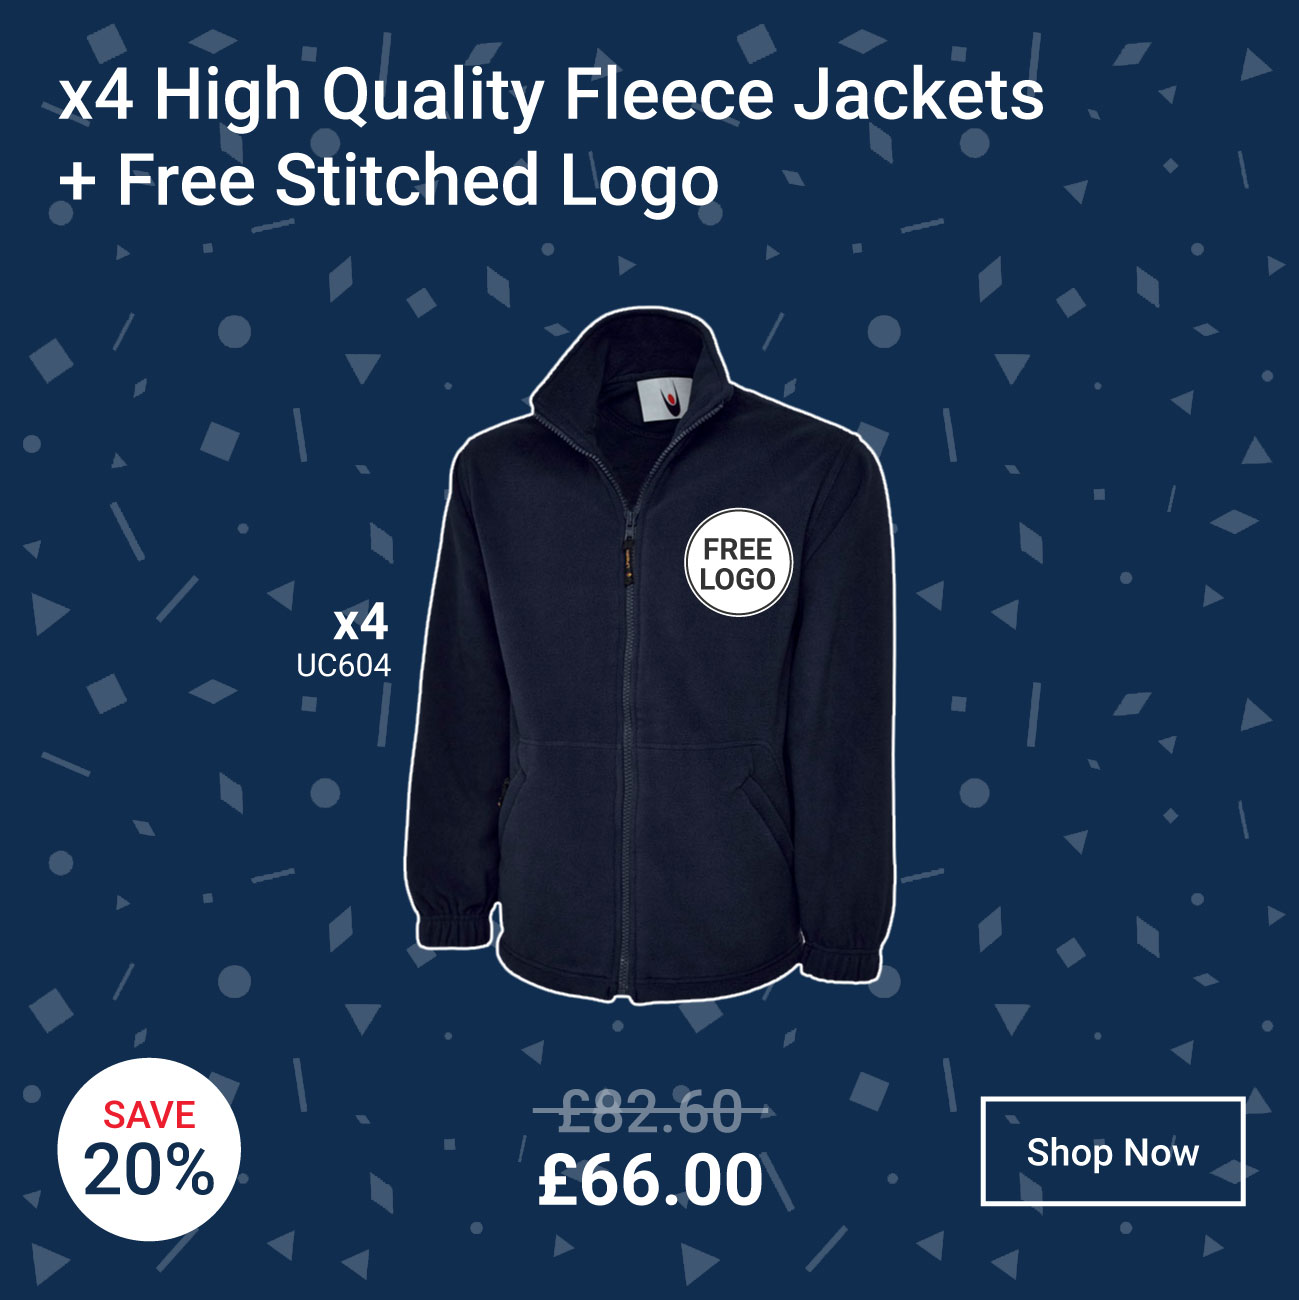 4 x High Quality Fleece Jackets + Free Stitched Logo